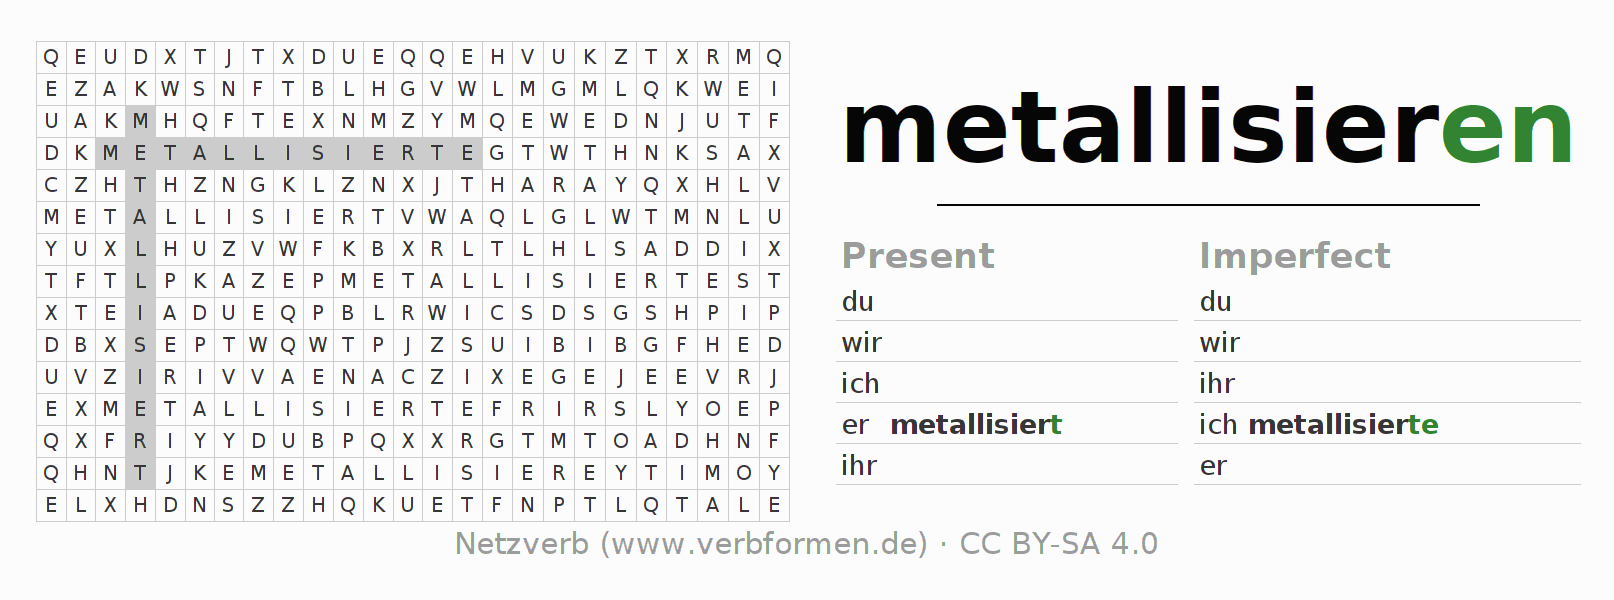 Word search puzzle for the conjugation of the verb metallisieren